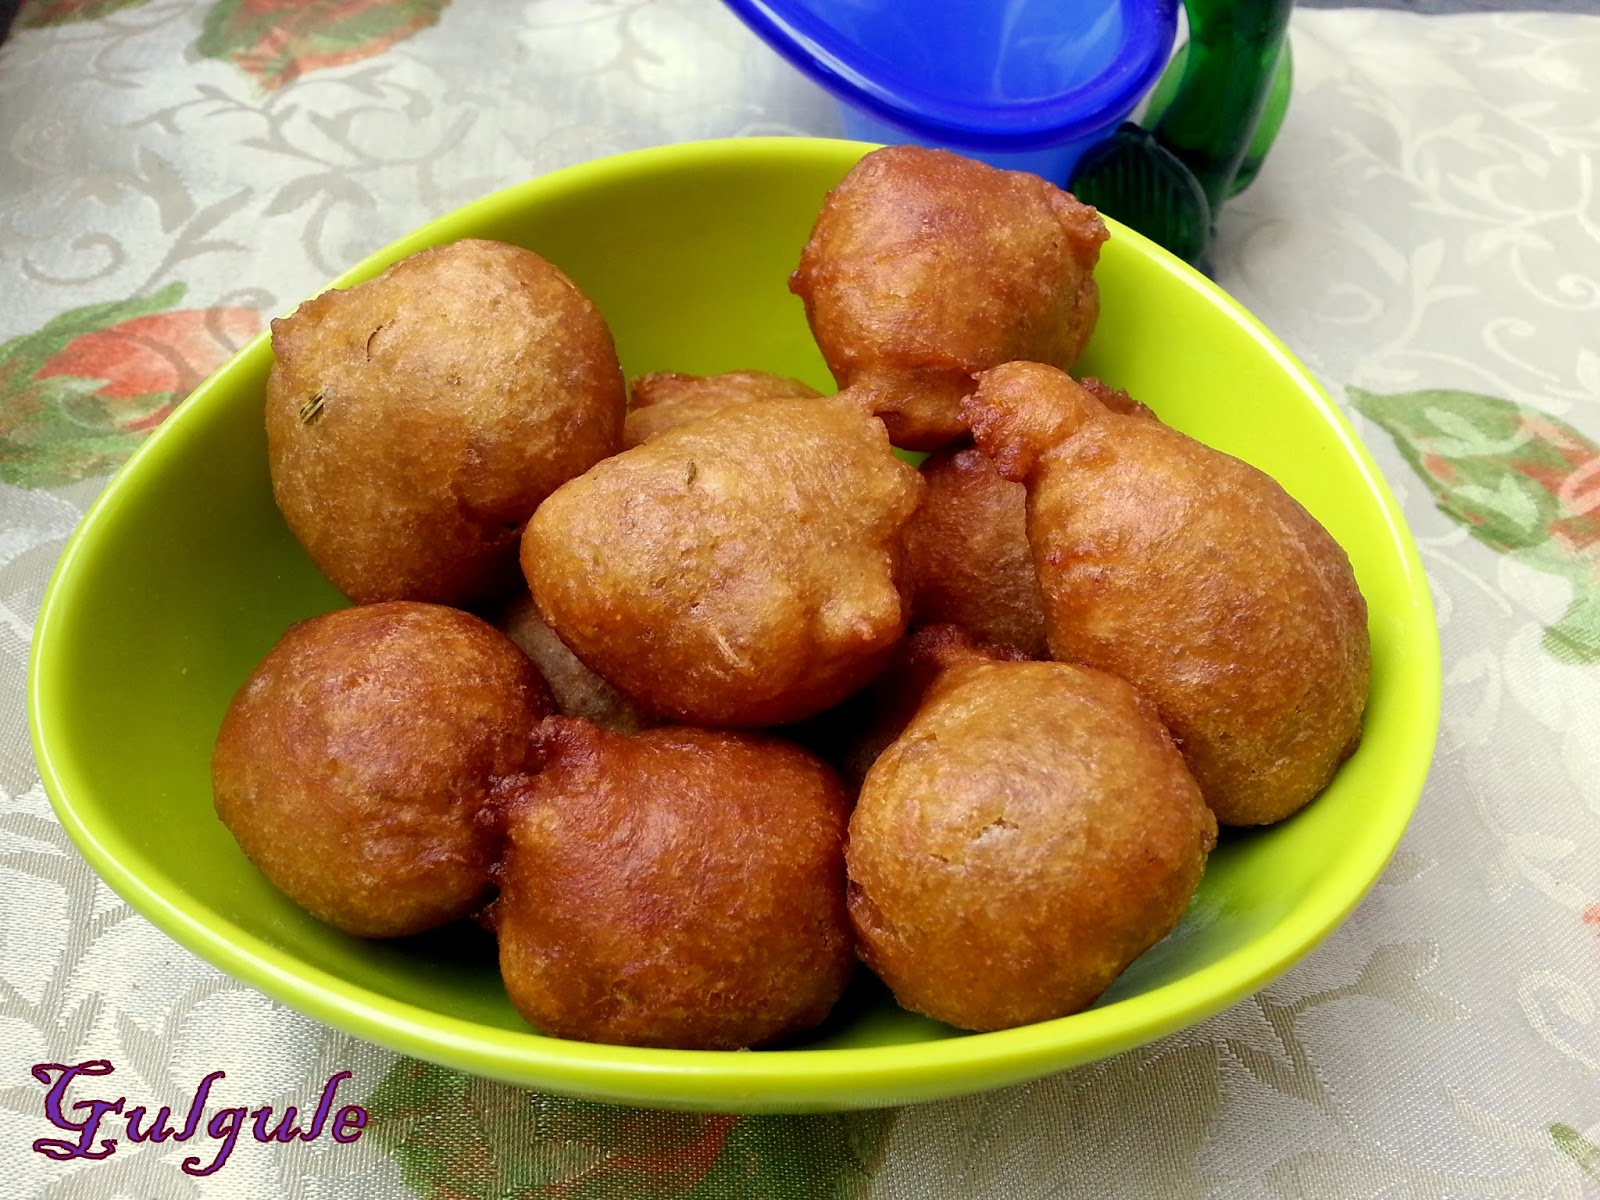 Annapurna gulgule sweet fritters recipe from leftover sugar syrup if you are looking for some more recipes made from leftover food do check out my instant chapati ladoo made from leftover chapati and pineapple fried rice forumfinder Choice Image